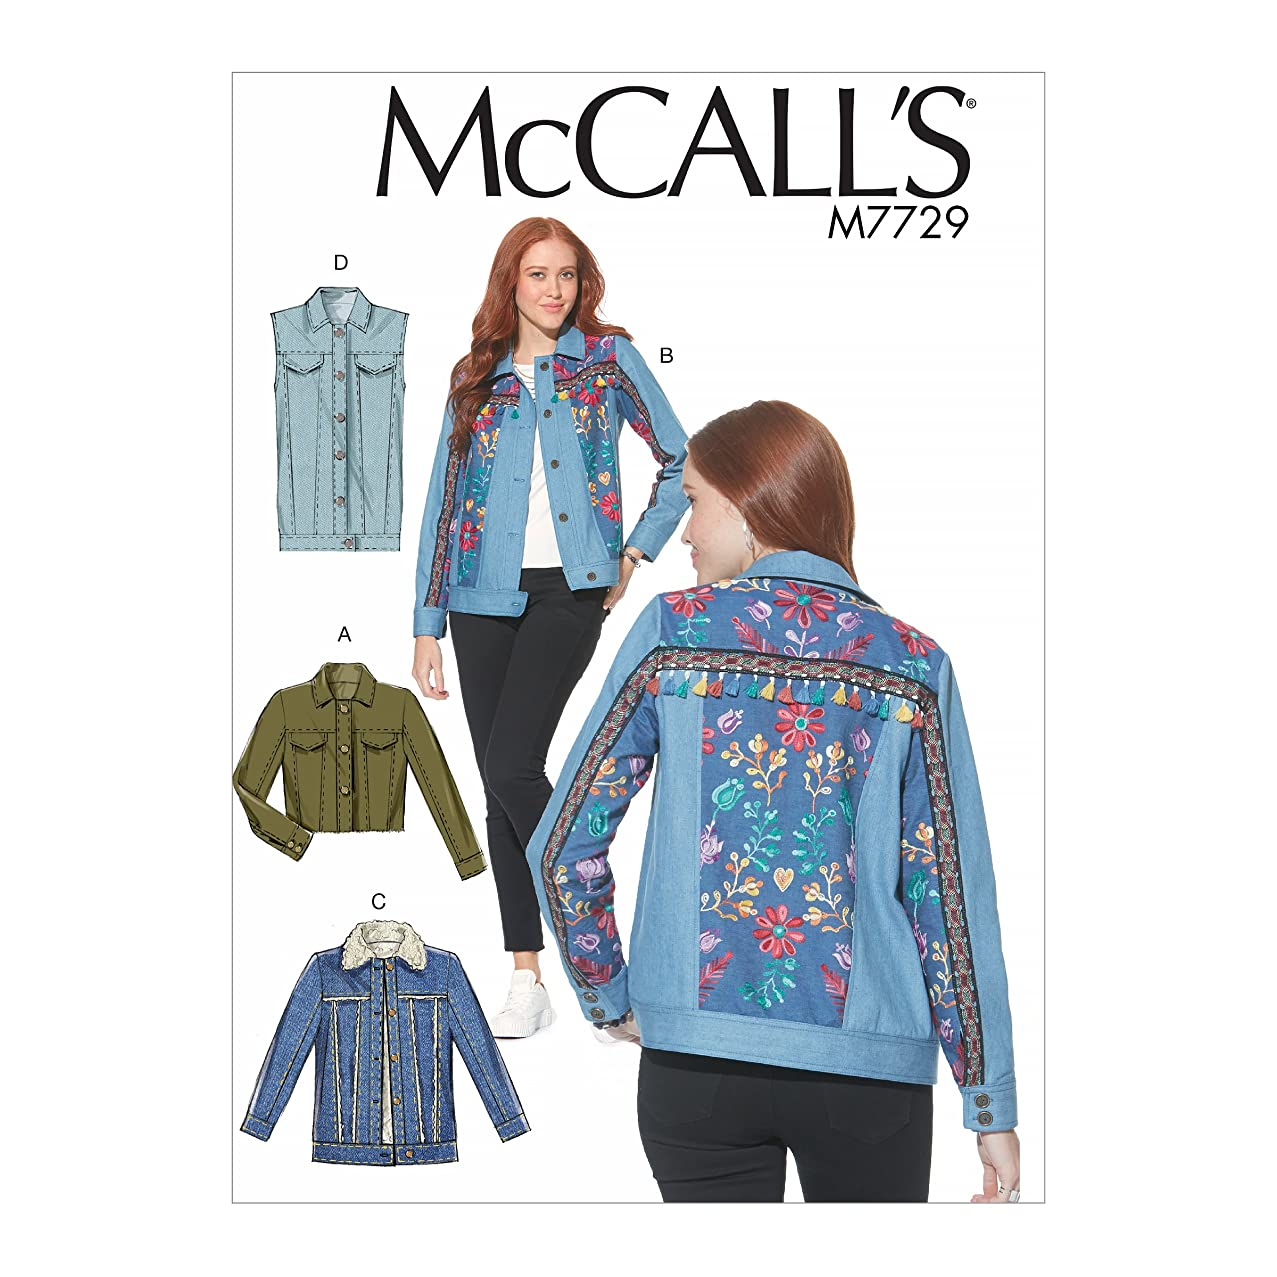 McCall Patterns M7729A50 Misses' Jackets and Vest